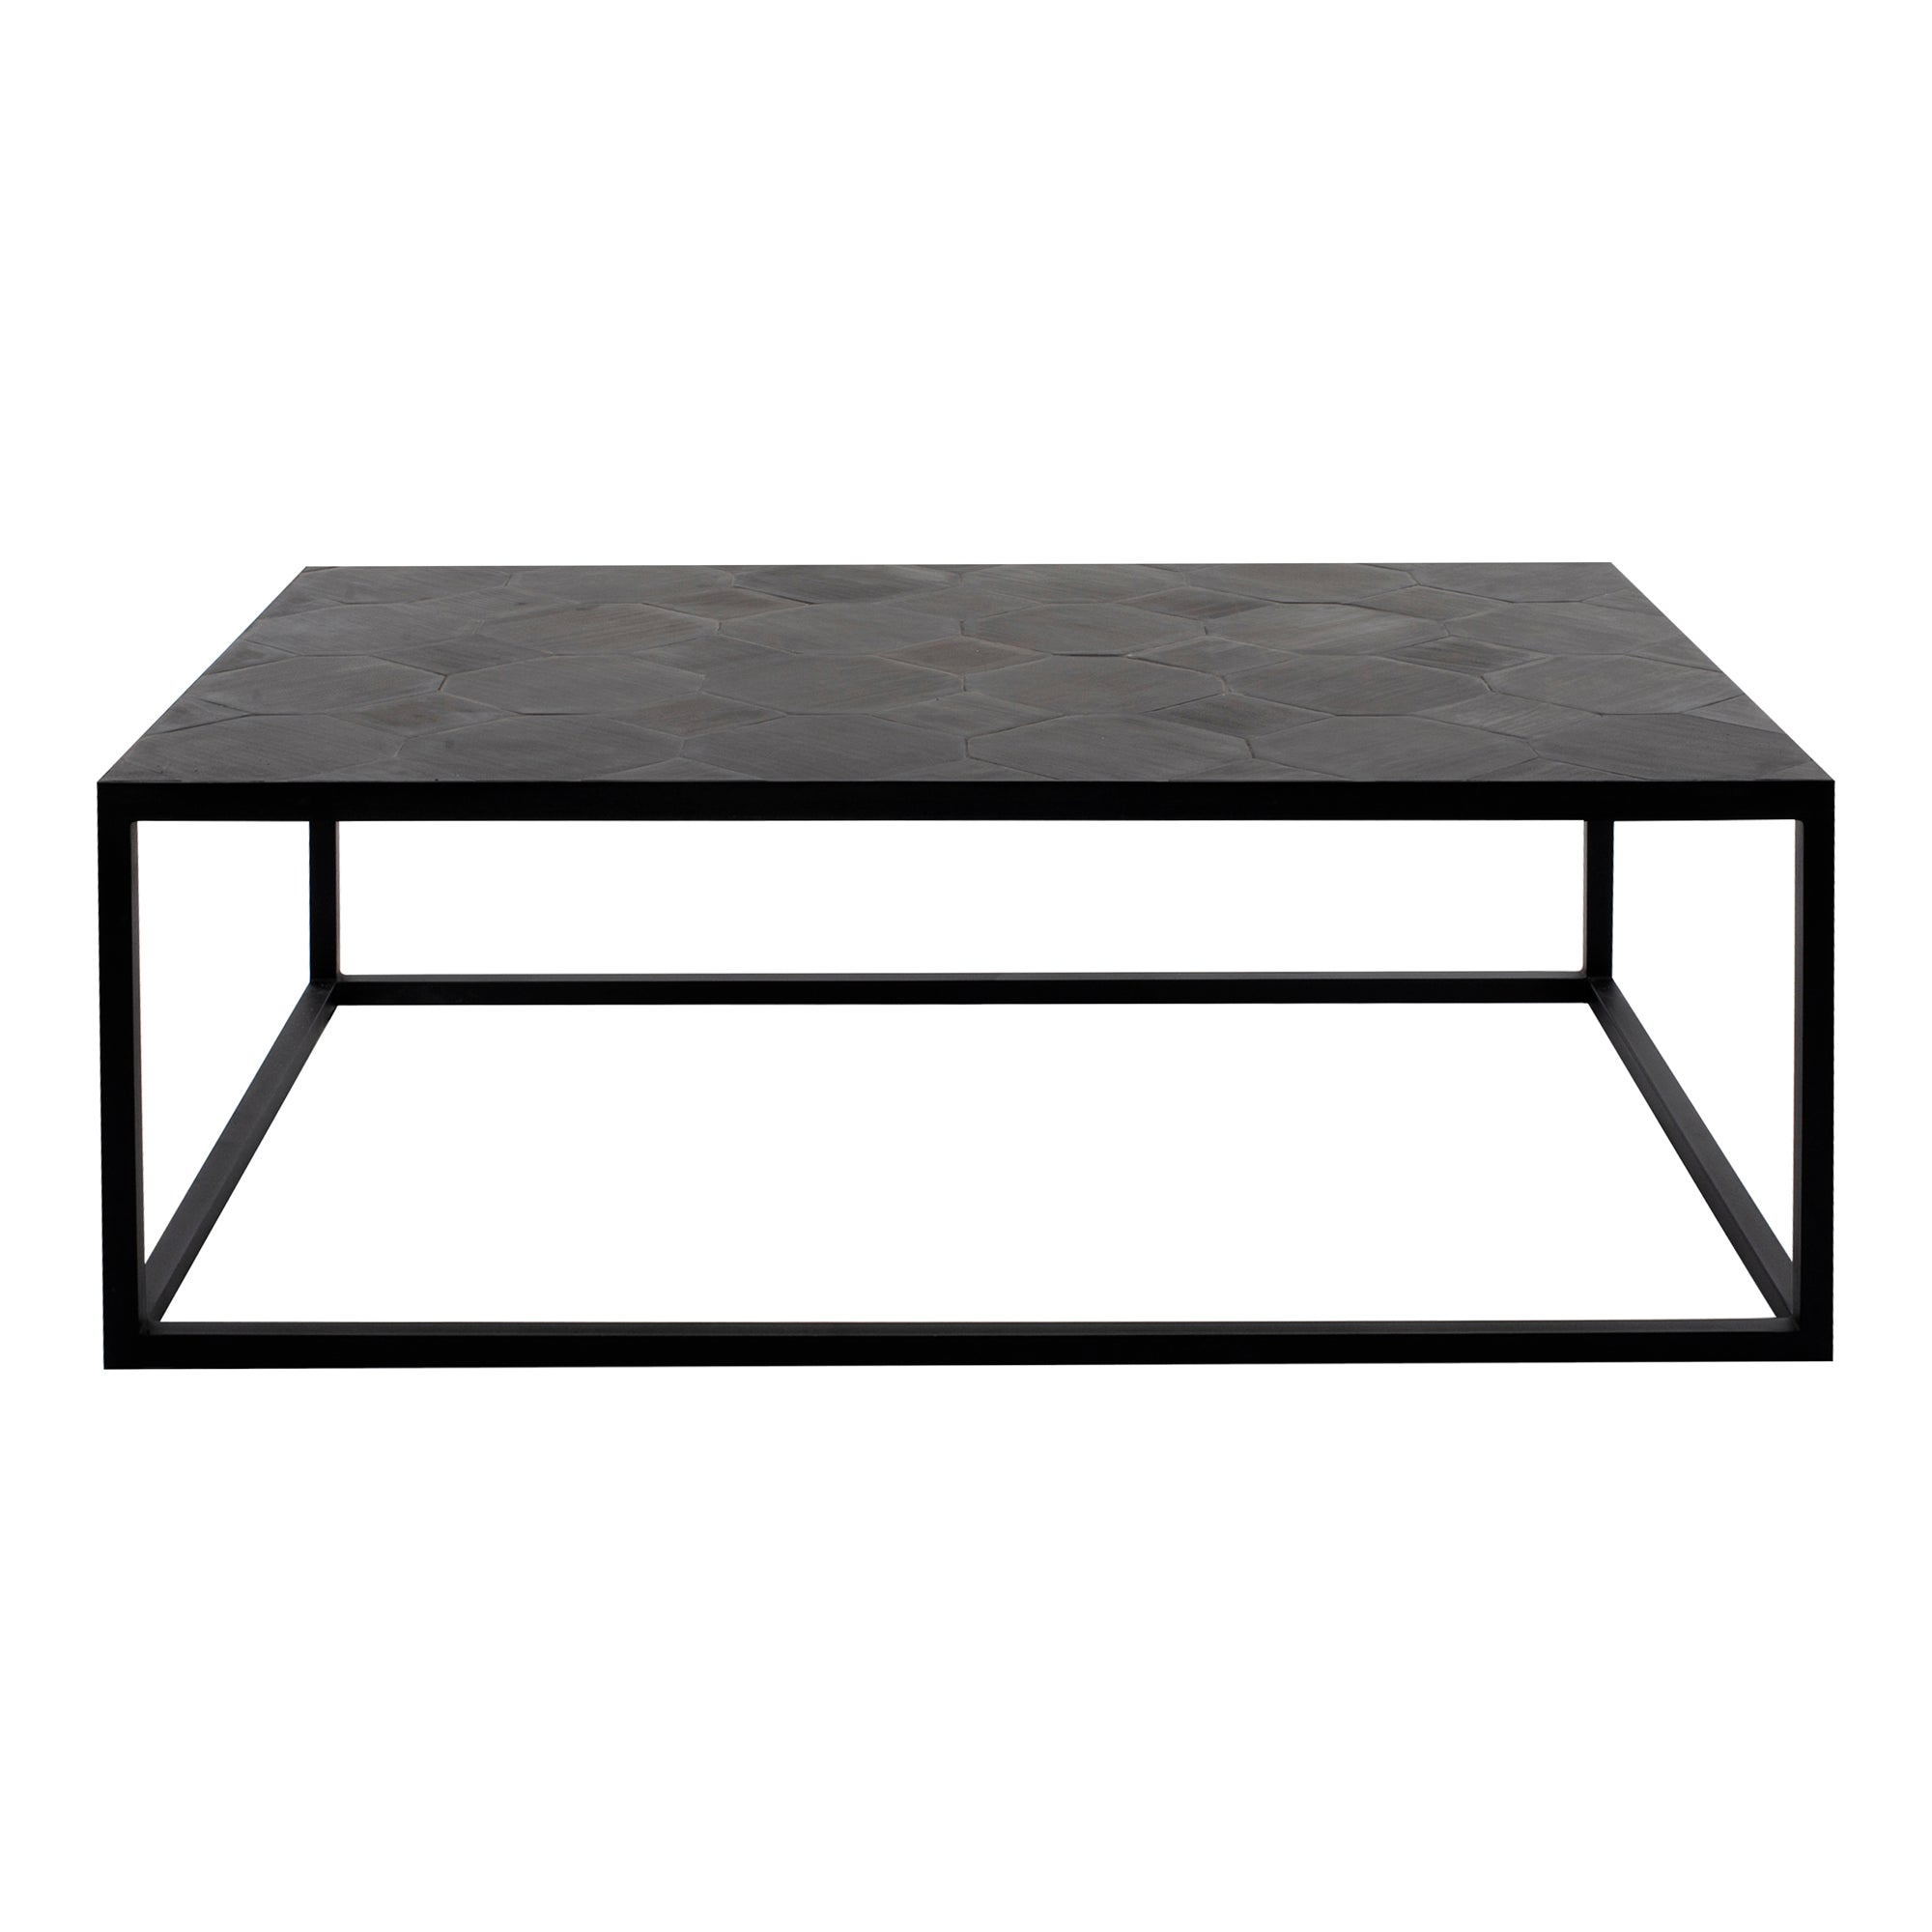 TYLE COFFEE TABLE, Black - Tops-Dress